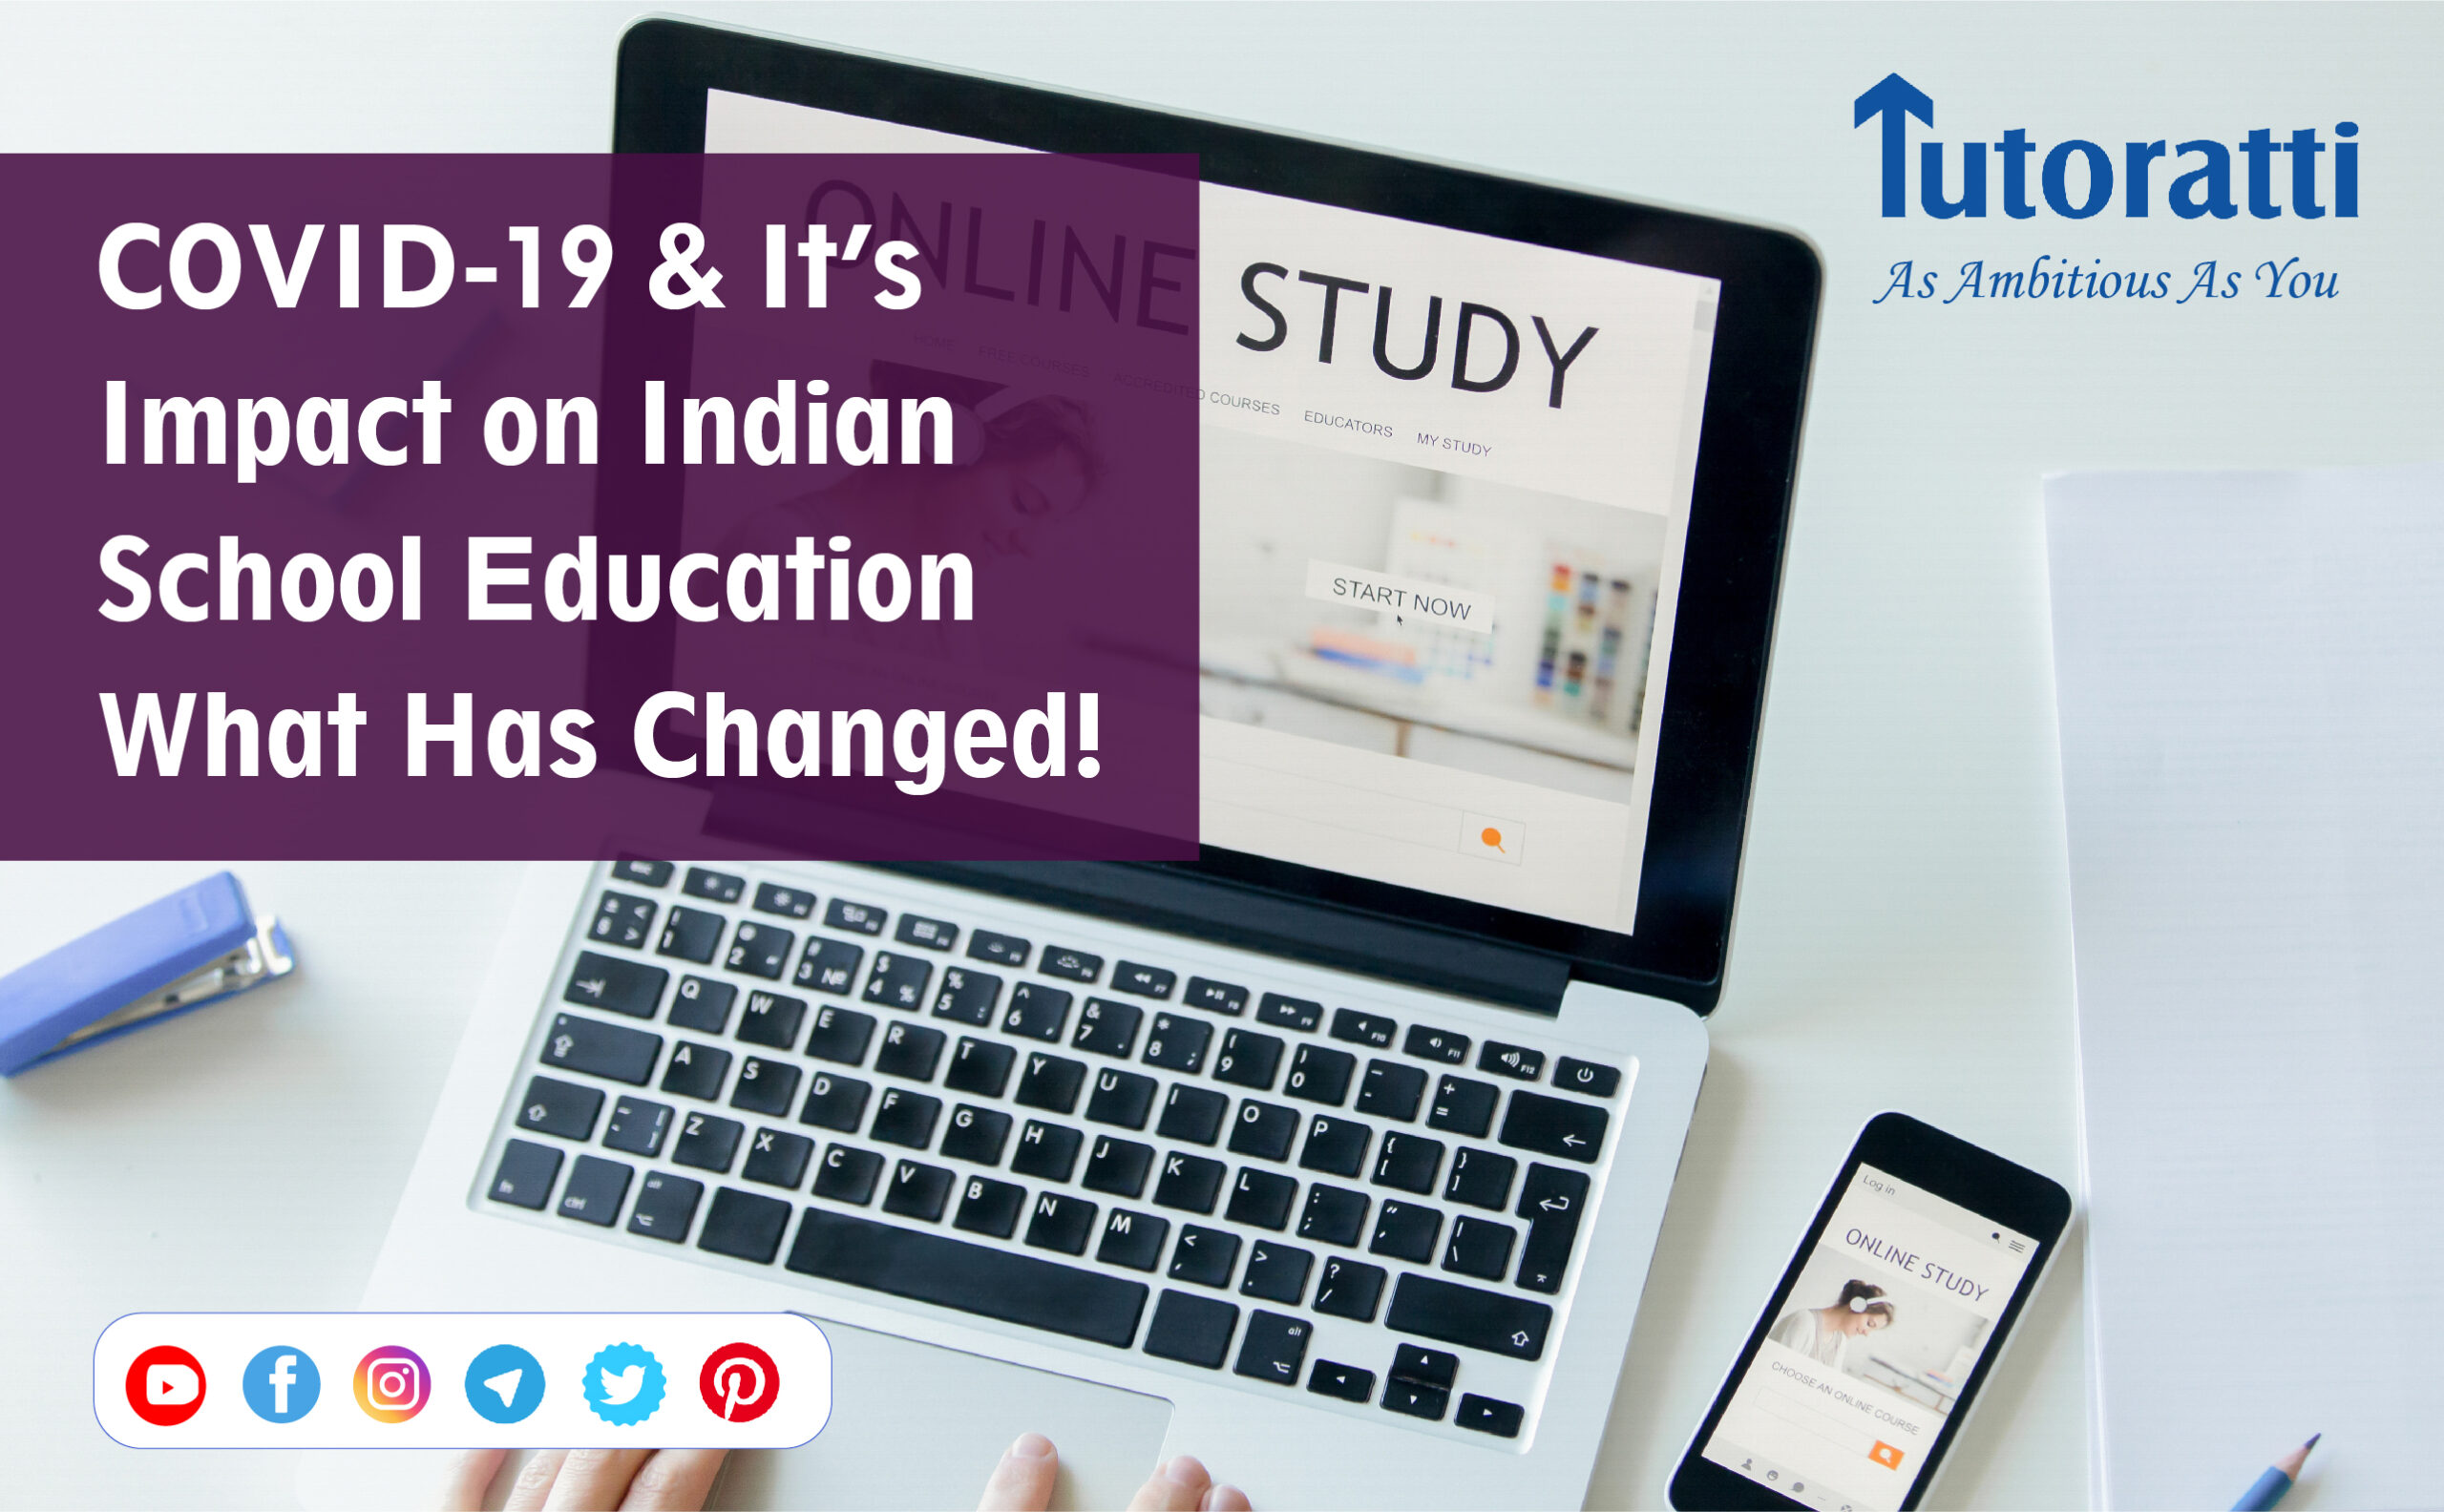 COVID-19 And Its Impact on Indian School Education: What Has Changed!